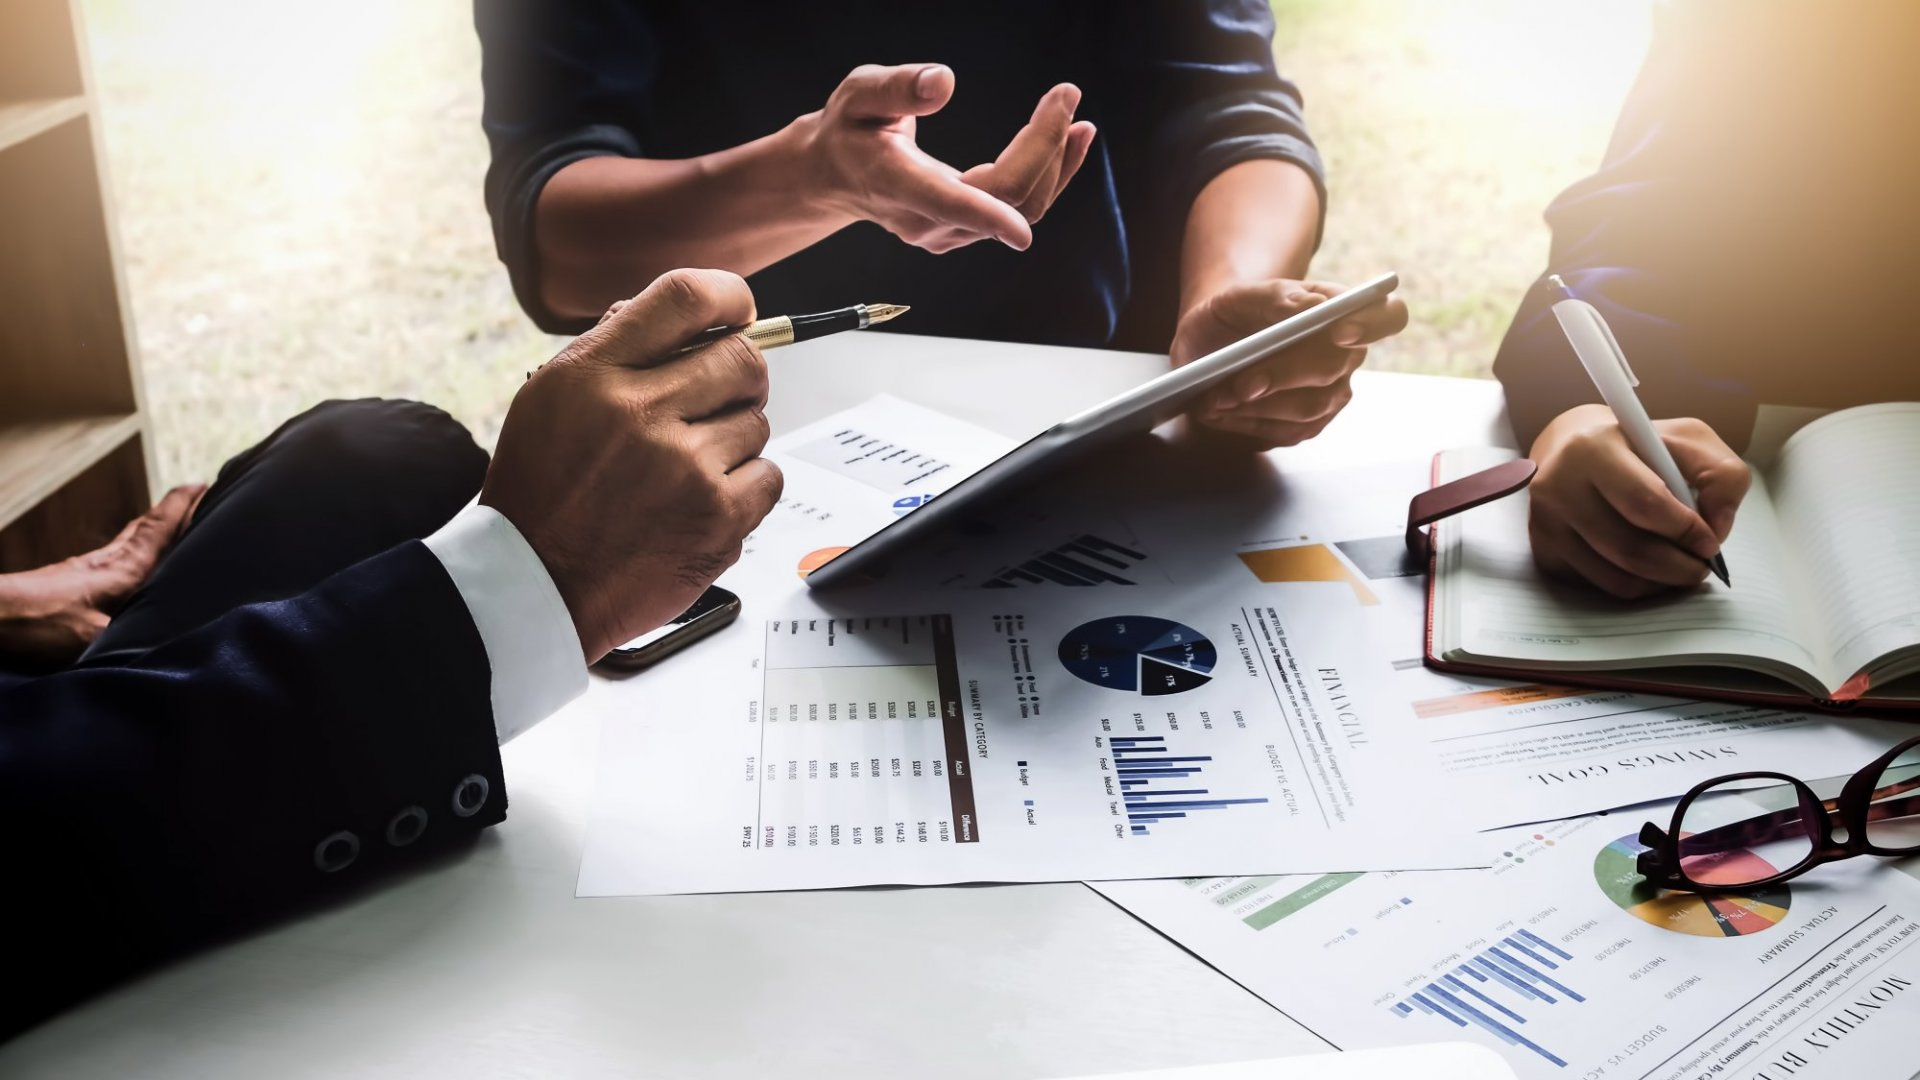 Think You Understand Your Financial Statements? Ask Yourself These 4 Questions